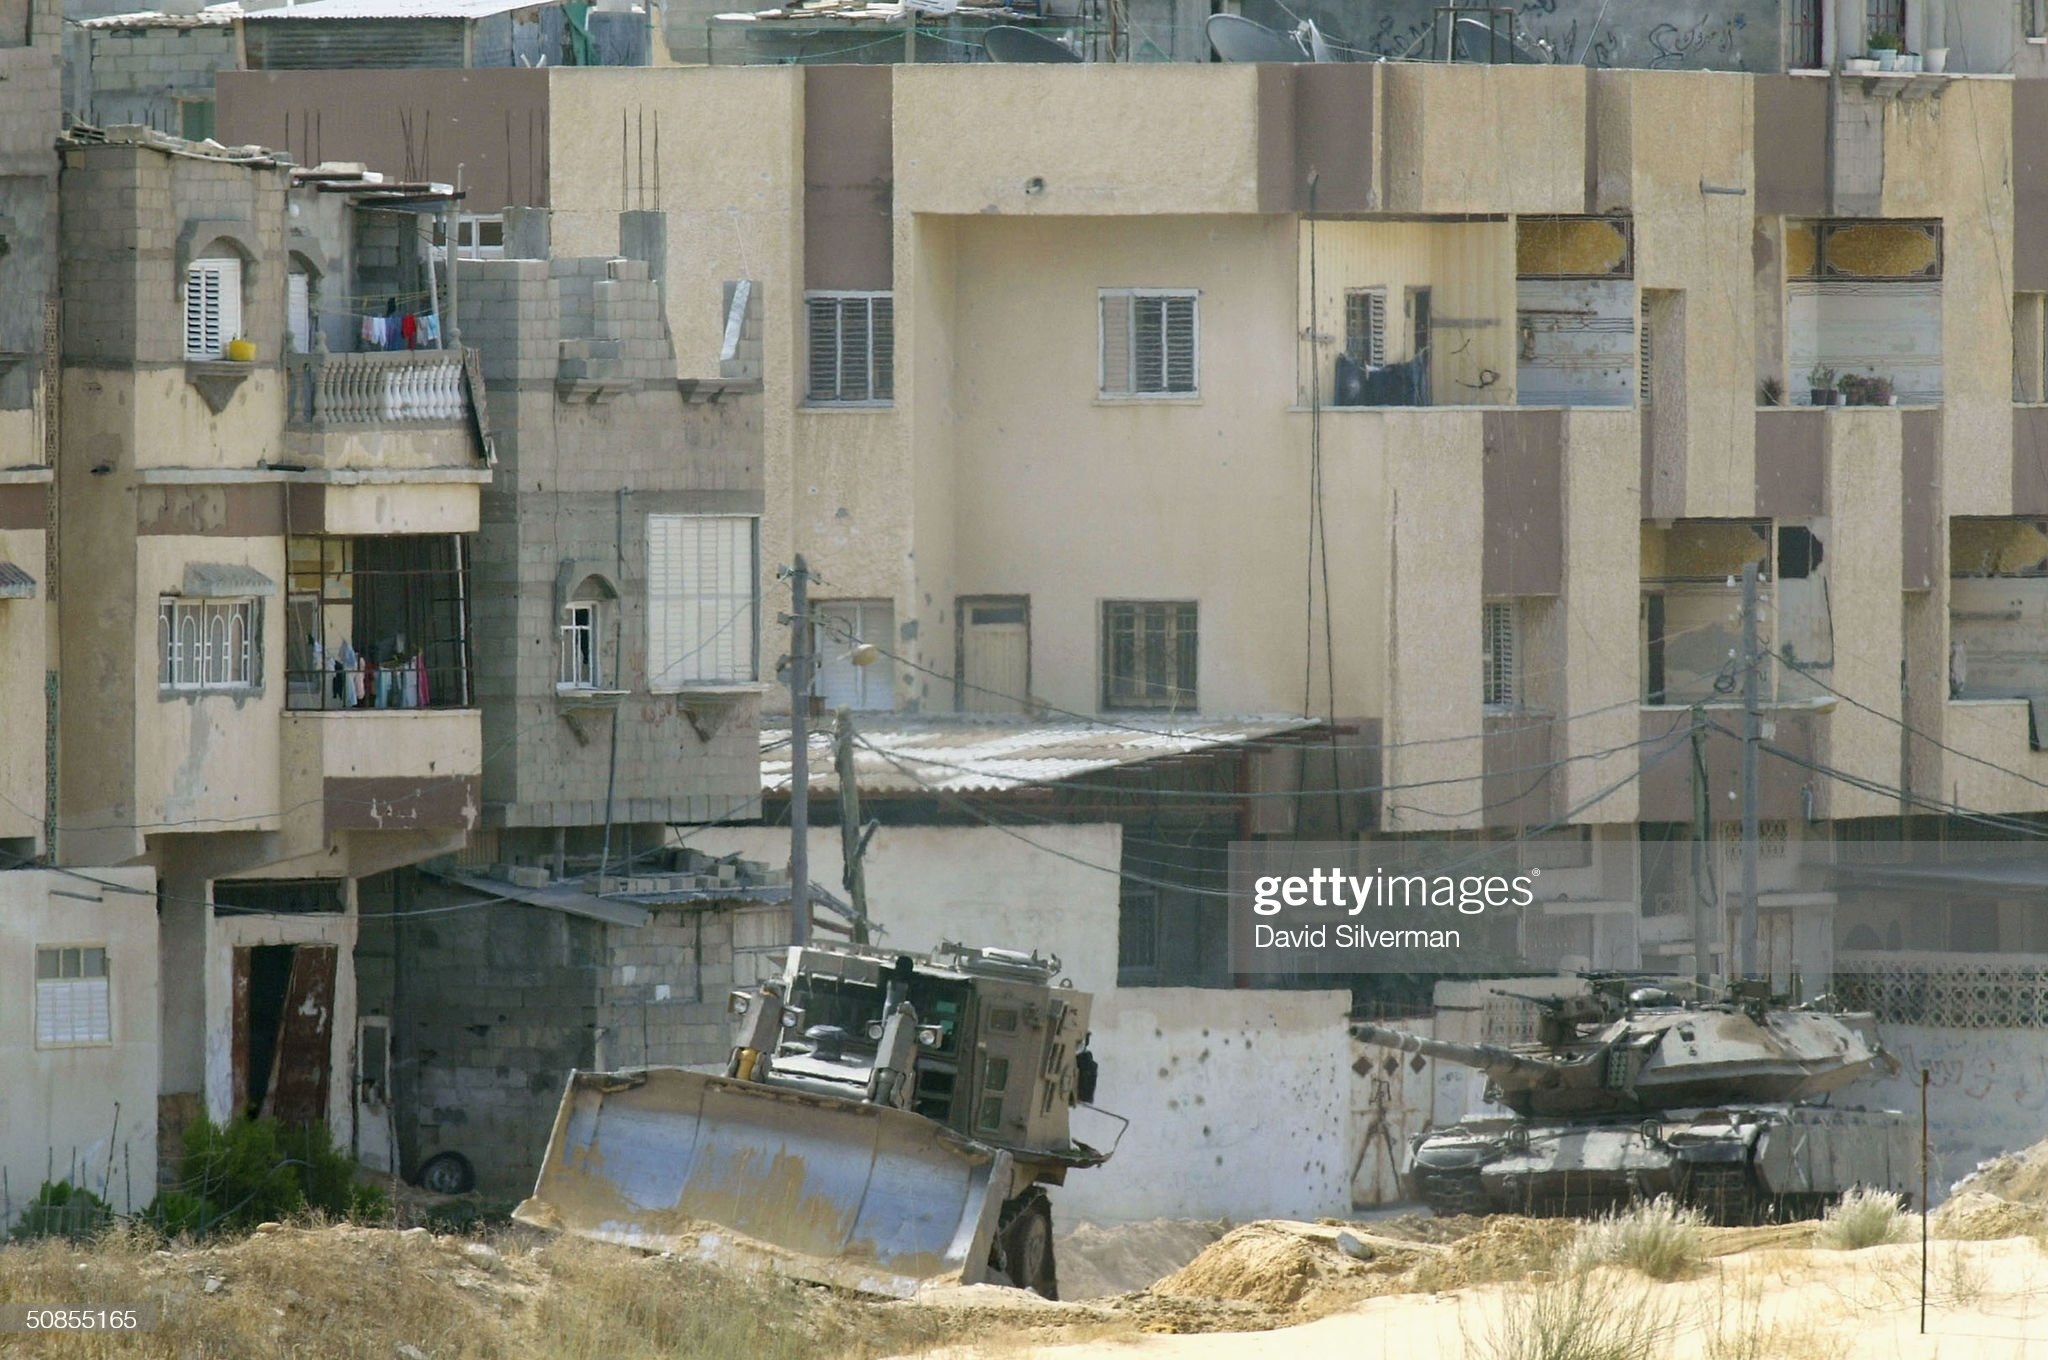 https://media.gettyimages.com/photos/an-israeli-army-merkava-tank-and-an-armored-bulldozer-operate-on-may-picture-id50855165?s=2048x2048